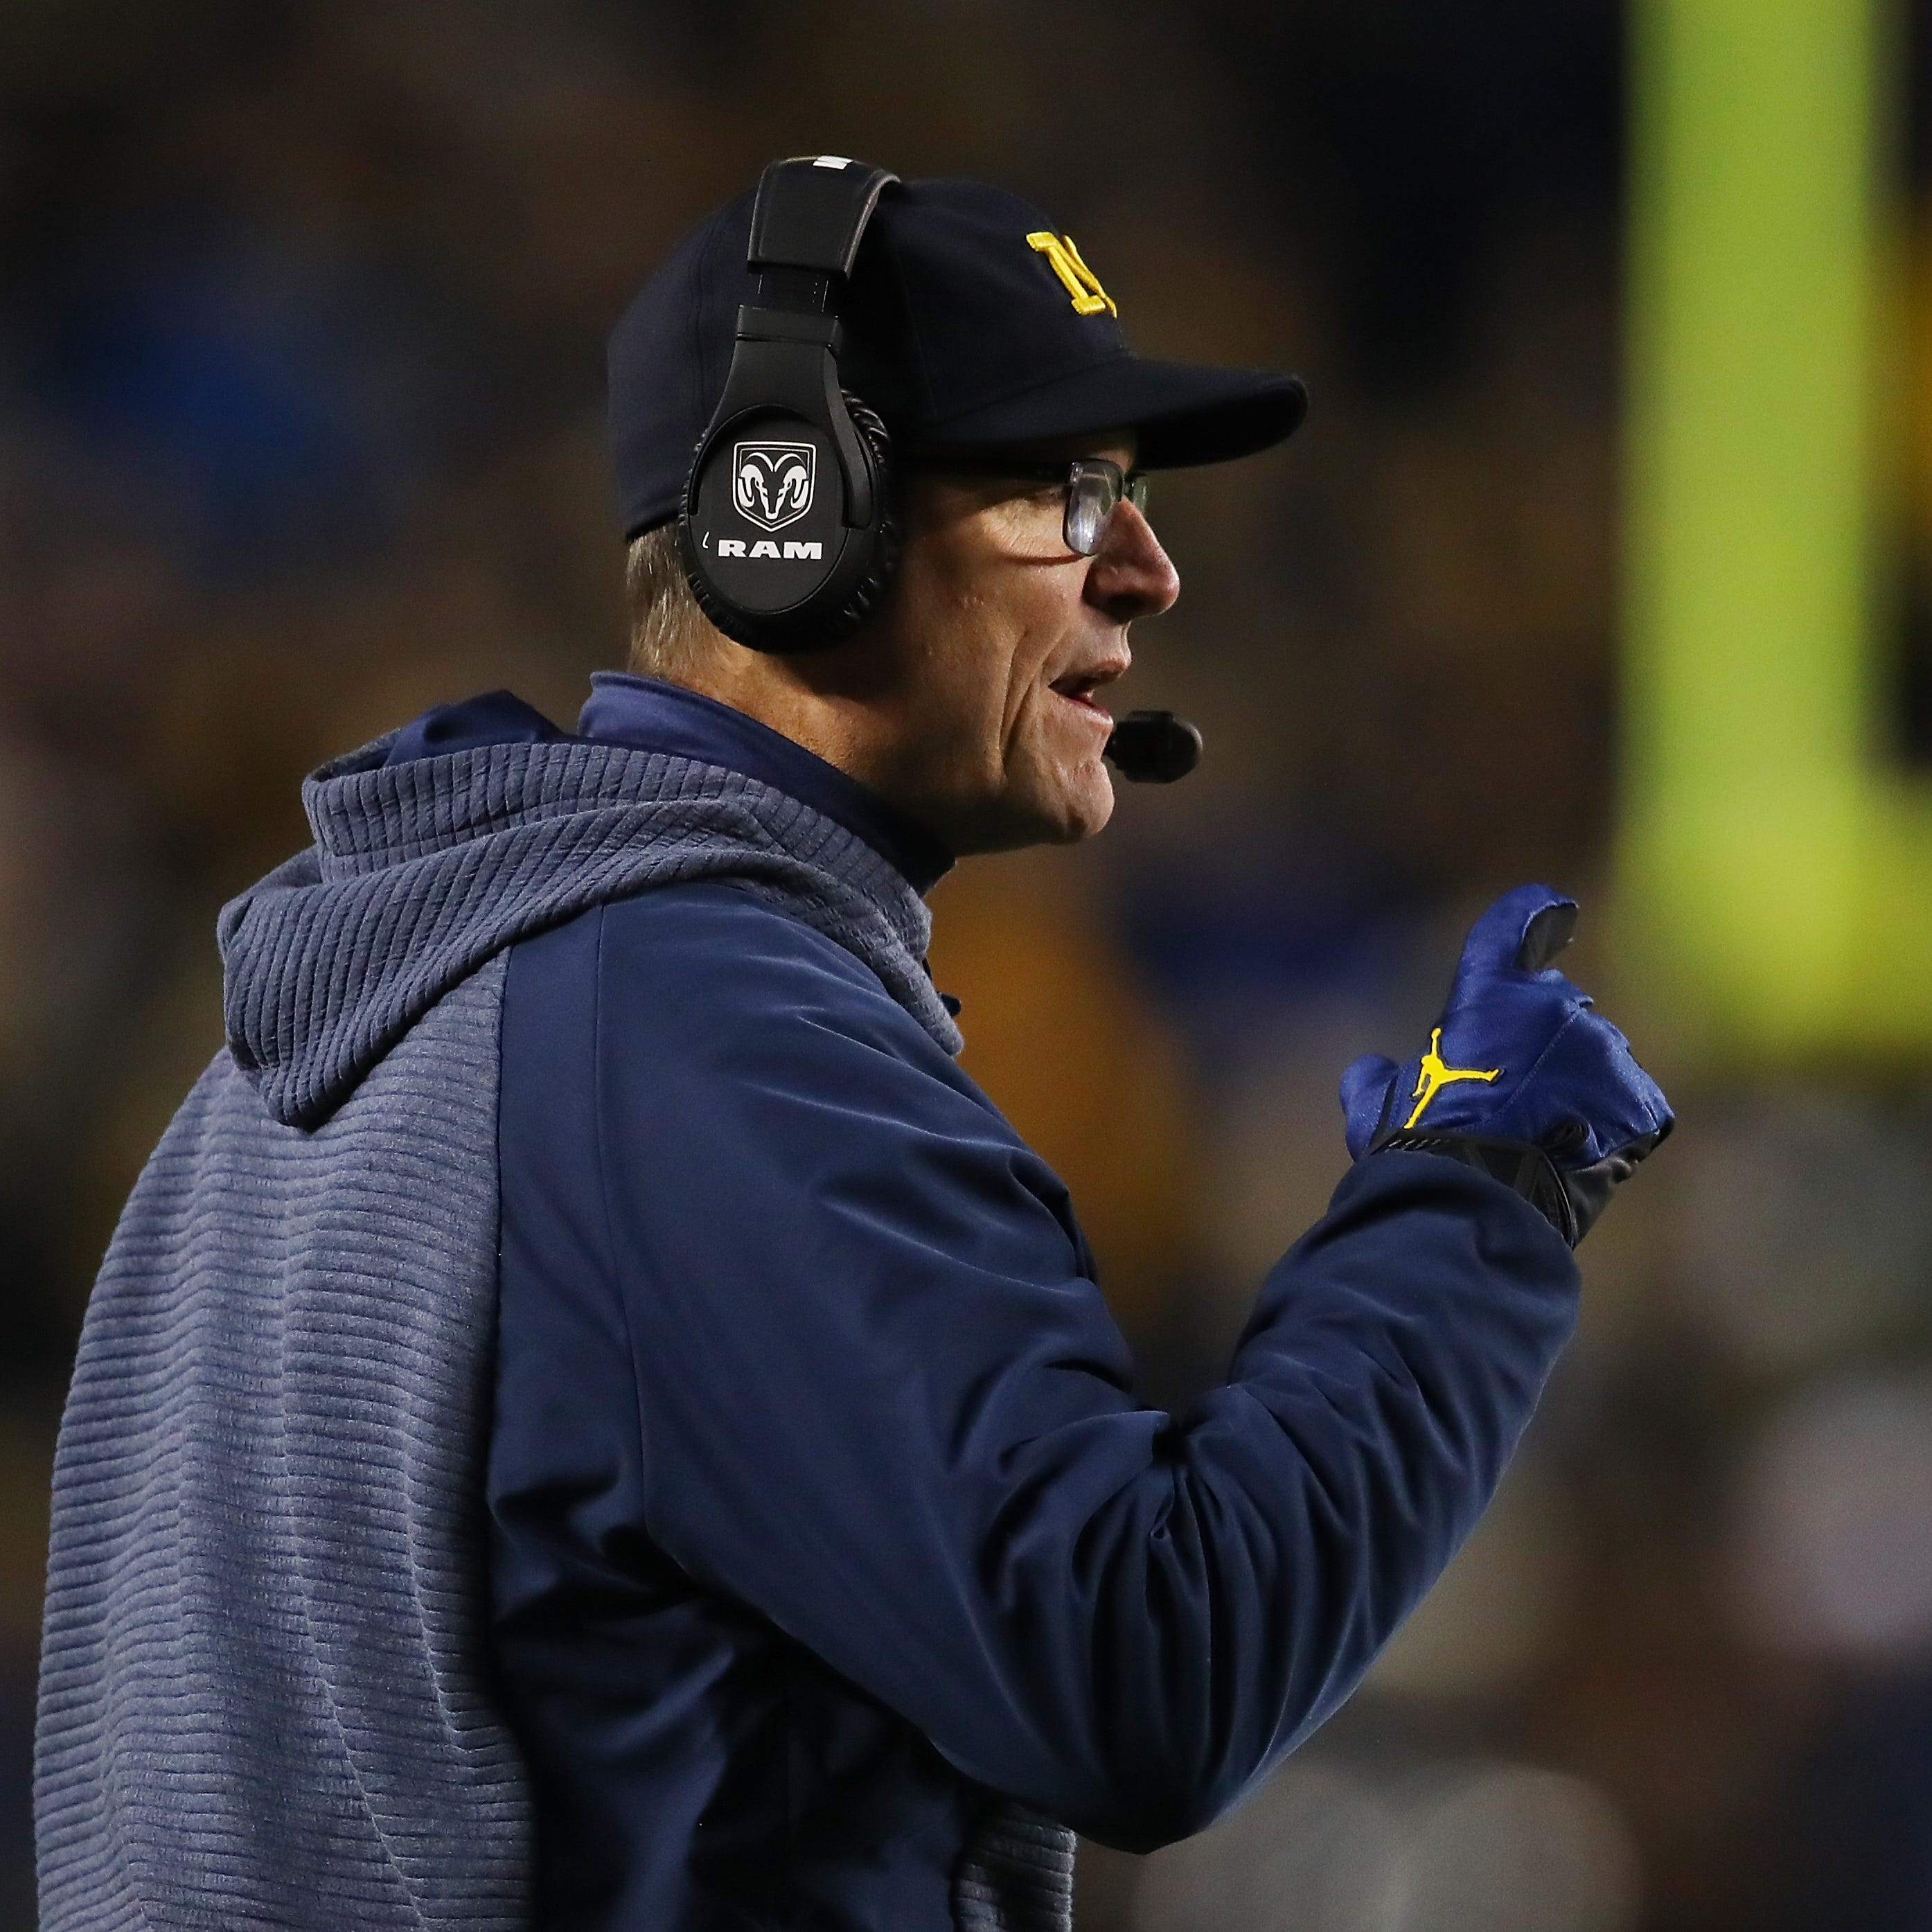 Michigan football: Here's what Jim Harbaugh said about Ohio State